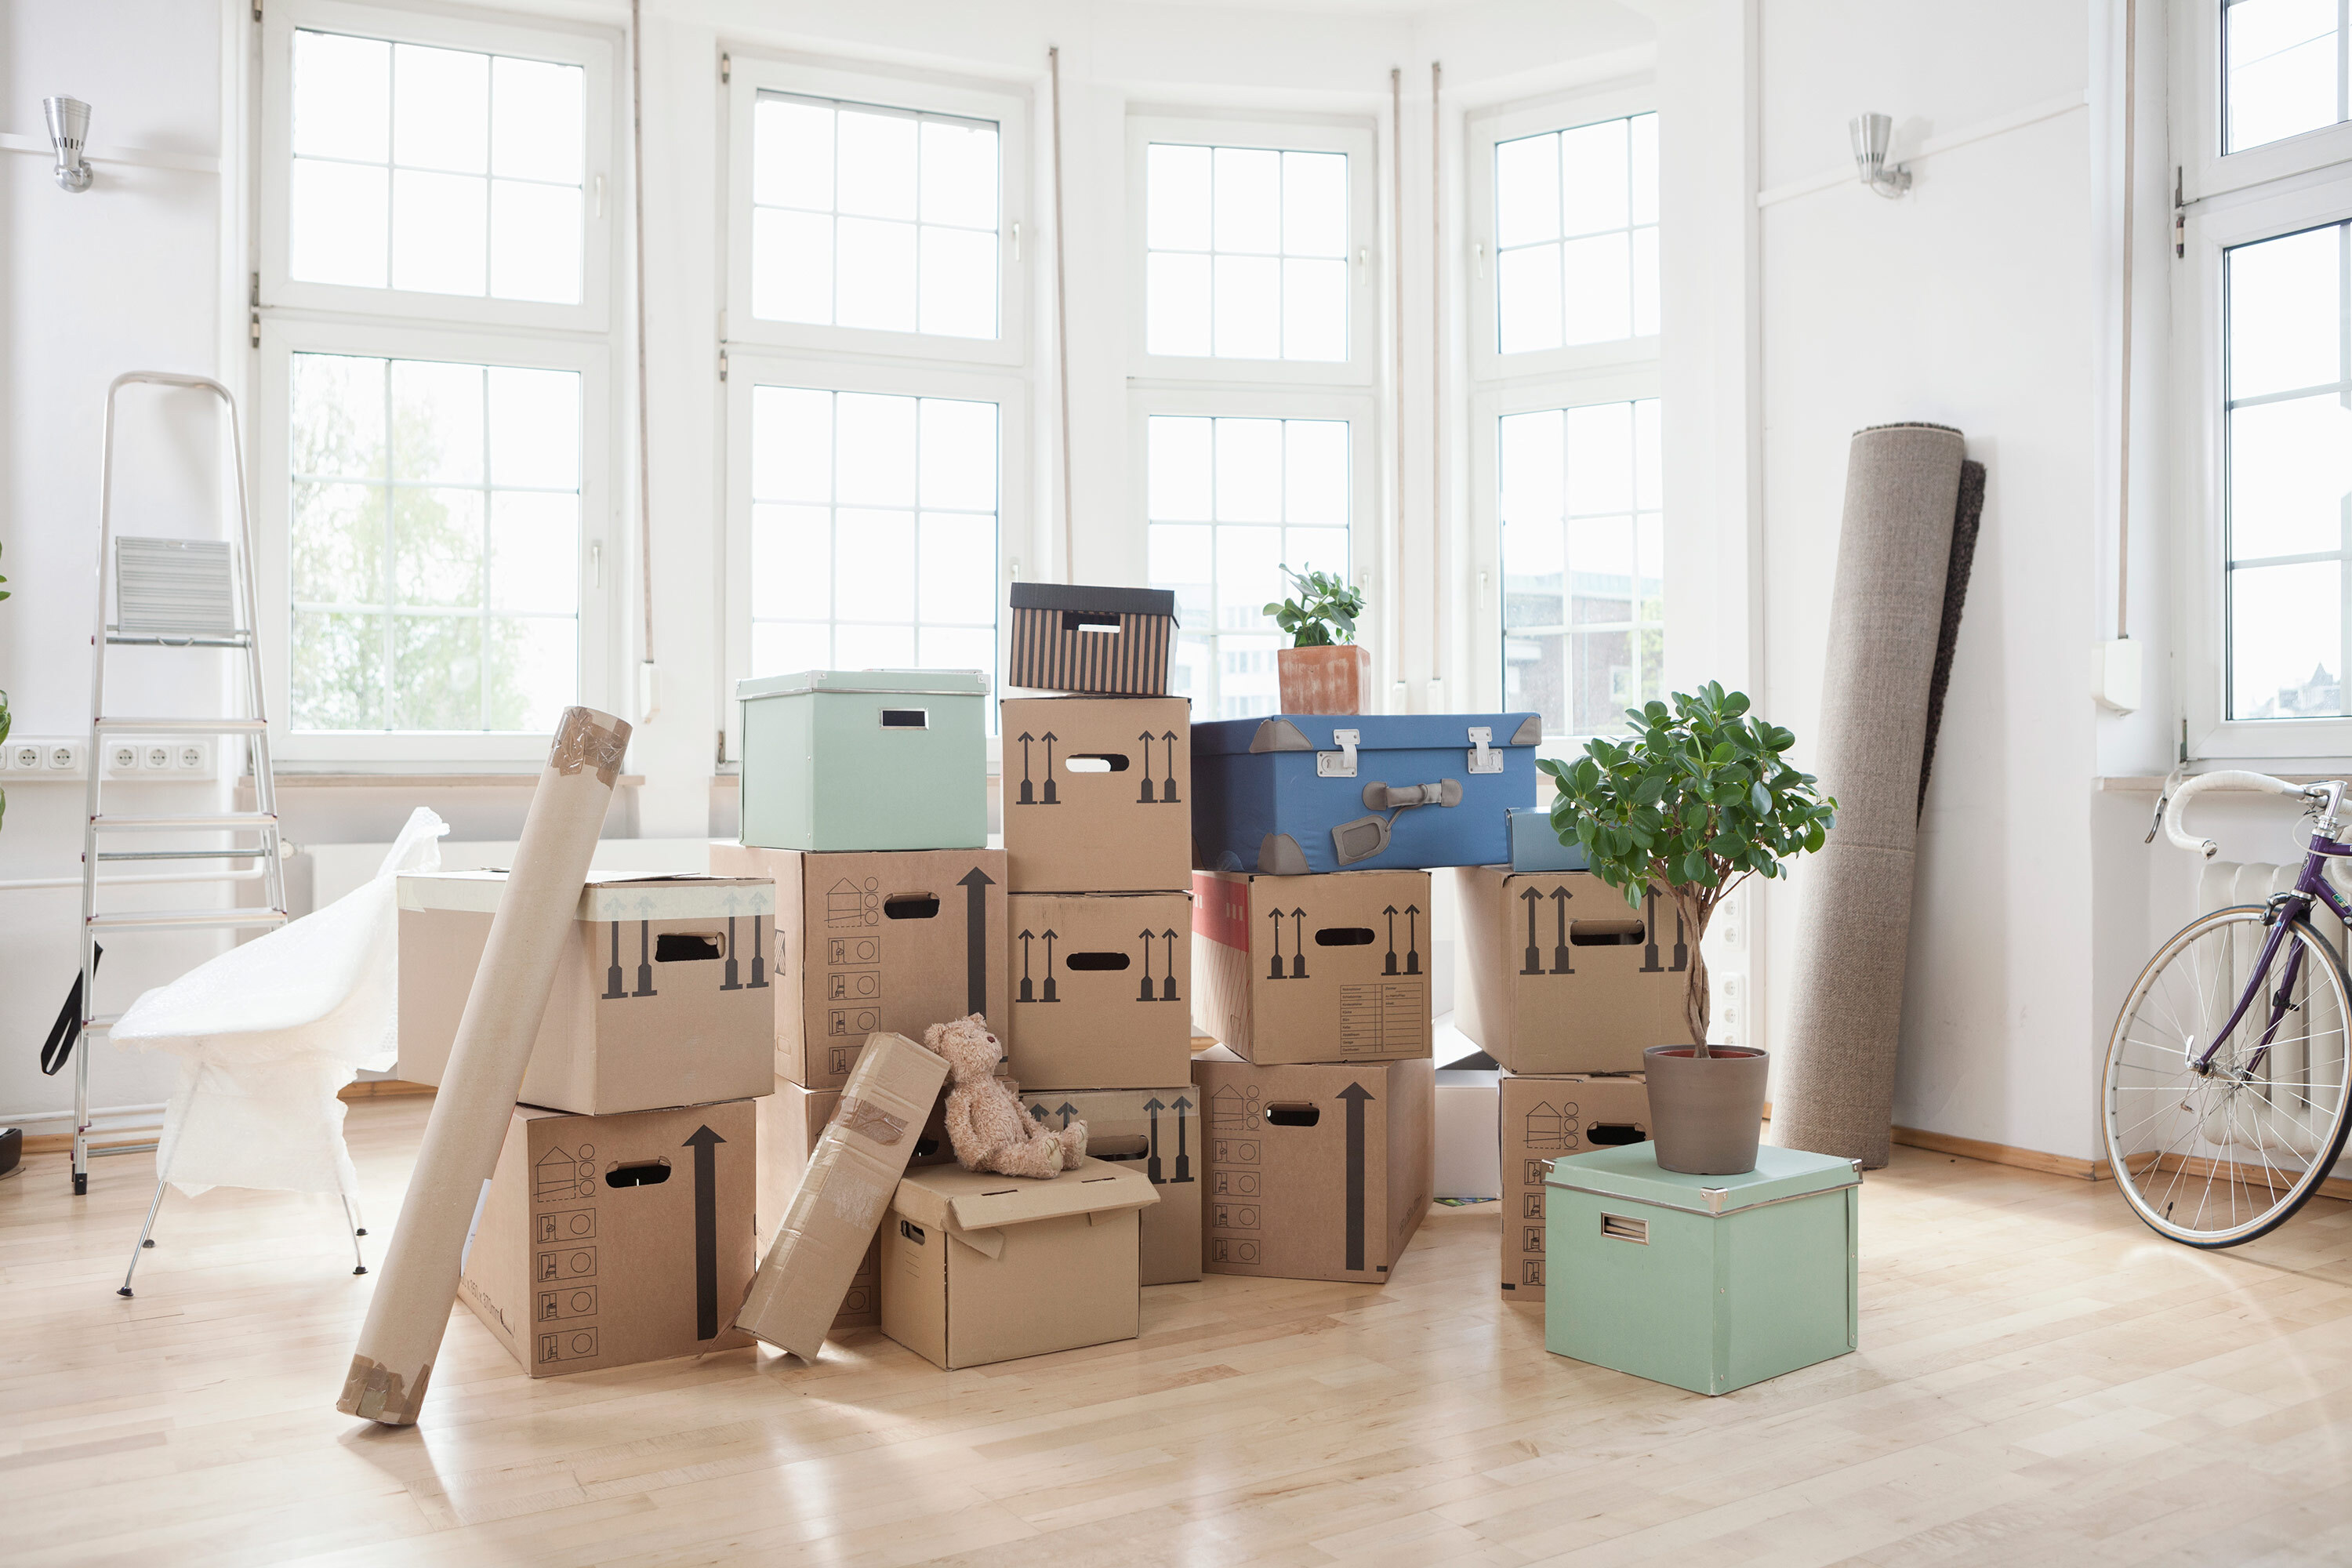 An image of packing boxes in a bright-lit apartment. The image is meant to illustrate the point that New Yorkers aren't fleeing the city for the suburbs.